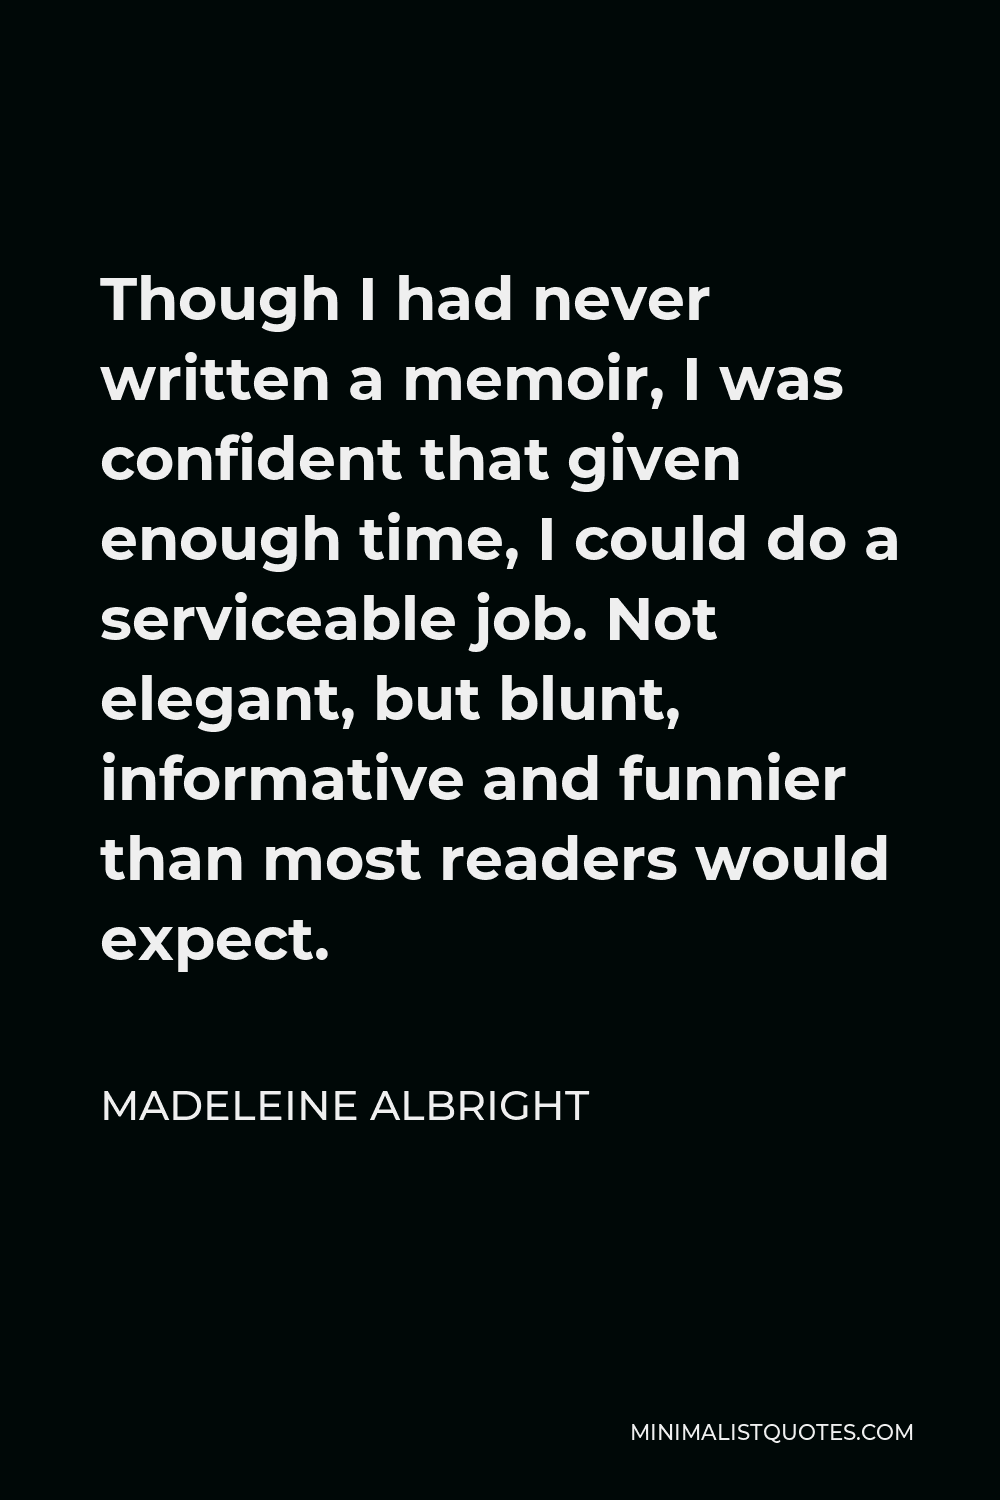 Madeleine Albright Quote - Though I had never written a memoir, I was confident that given enough time, I could do a serviceable job. Not elegant, but blunt, informative and funnier than most readers would expect.